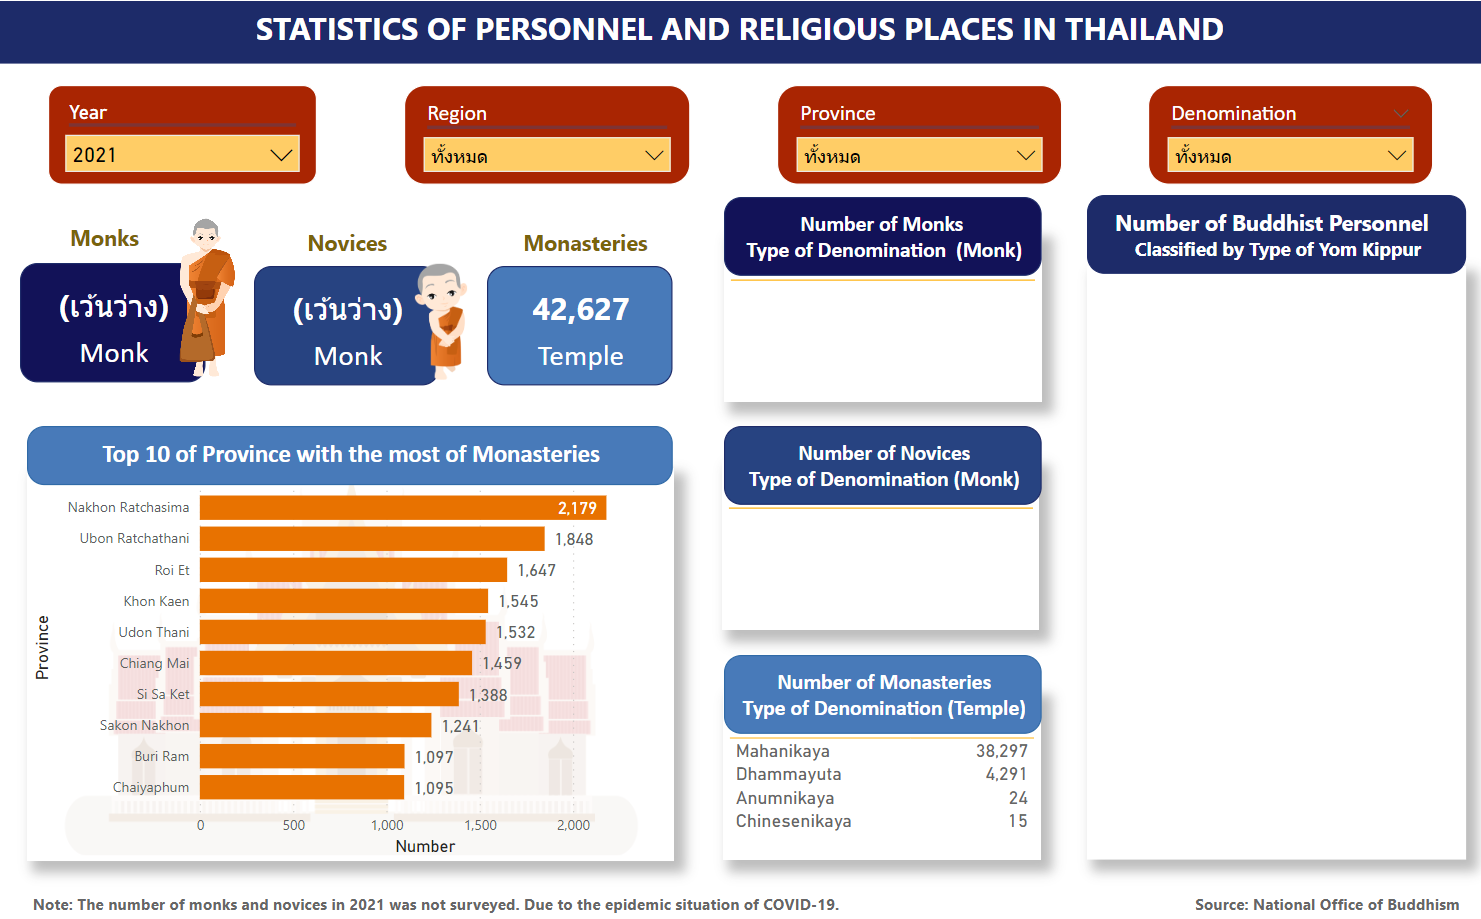 Statistics of Personnel and Religious Places in Thailand